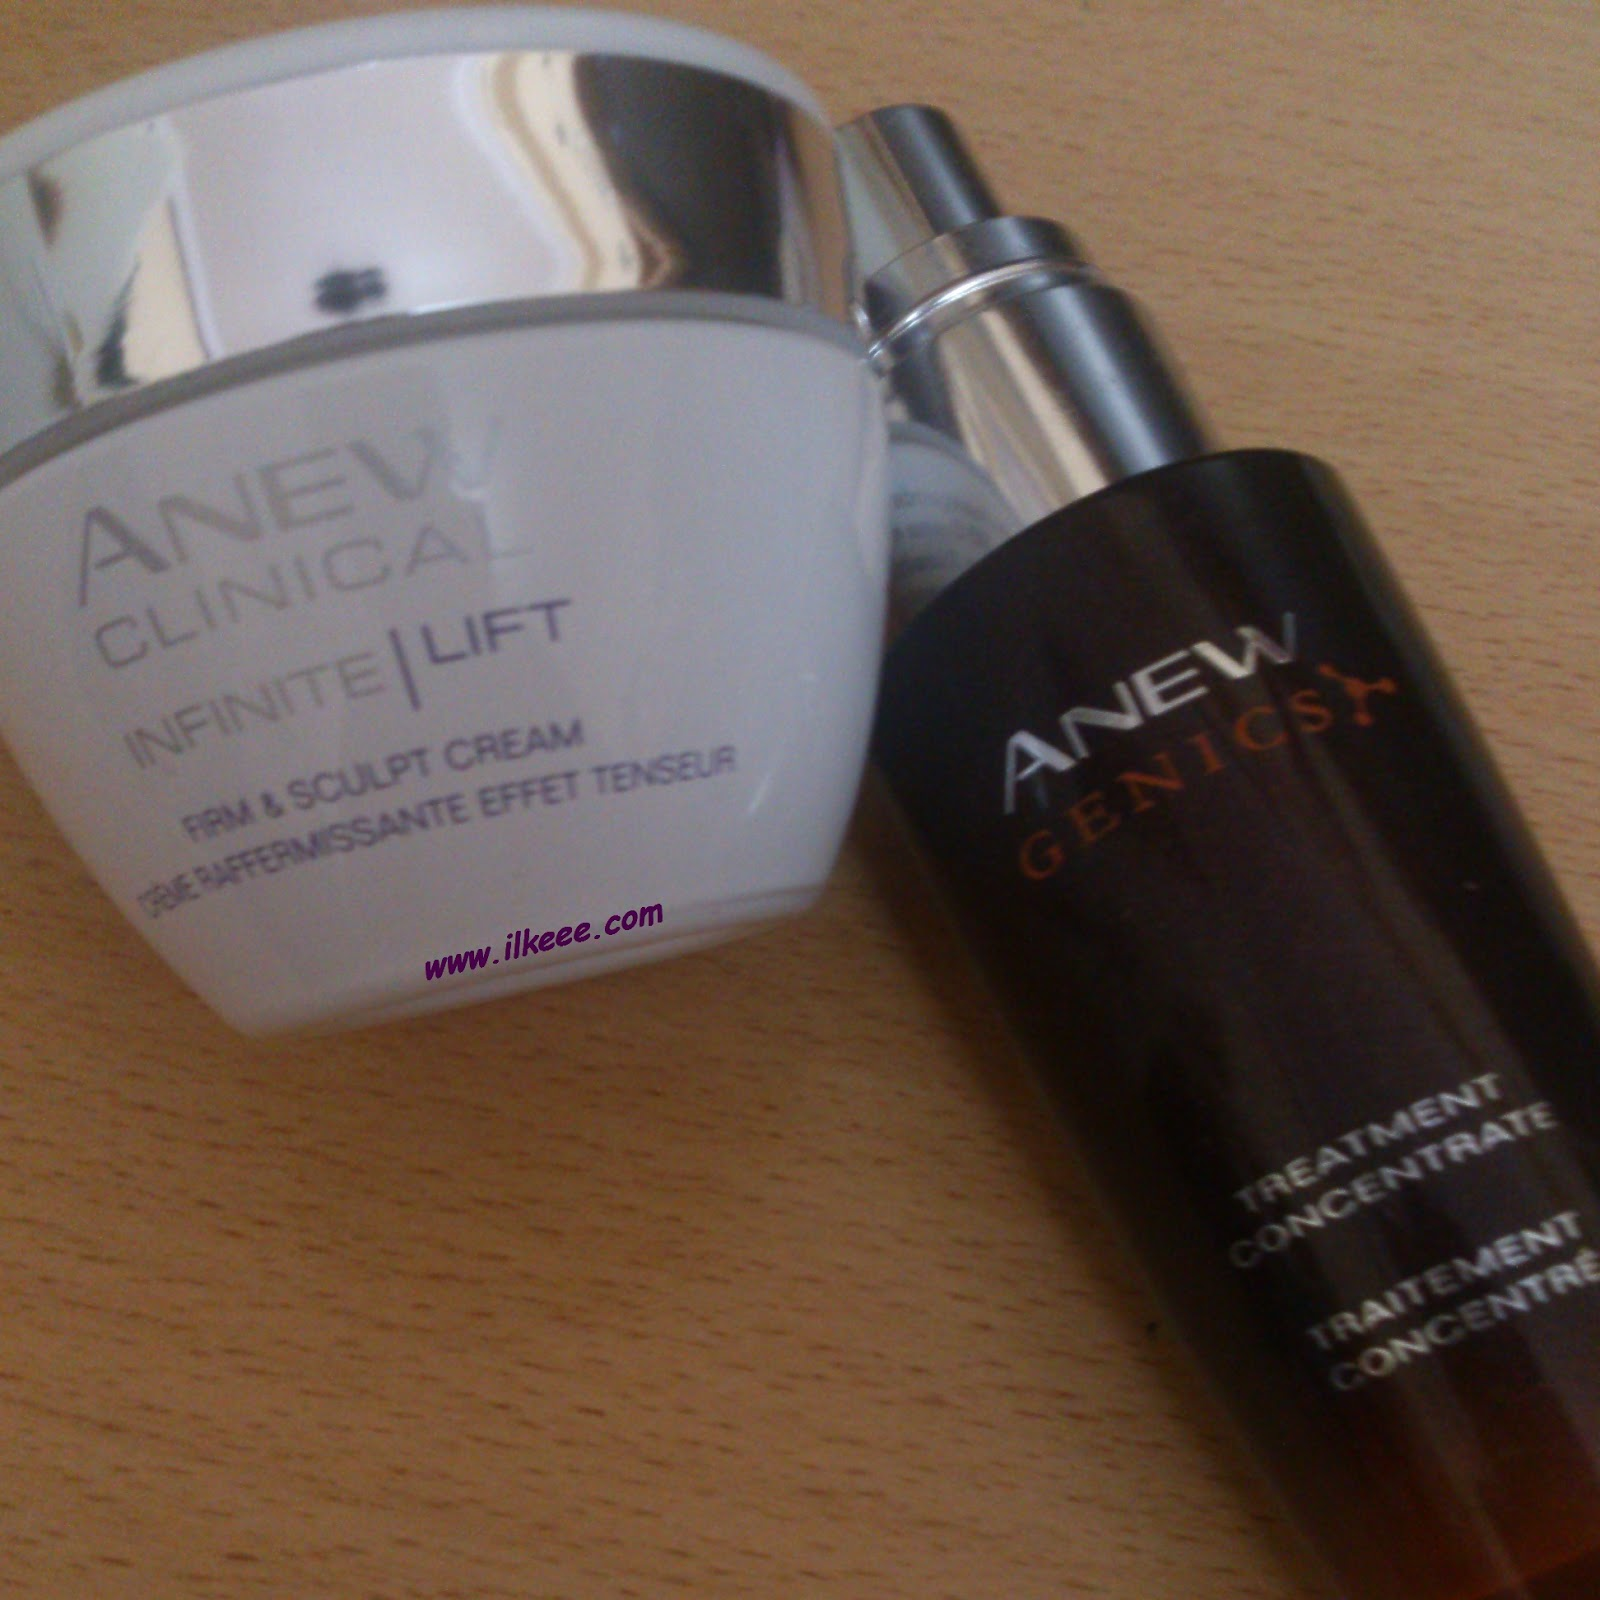 Anew Clinical İnfinite Lift krem - Anew Genics Serumu - Avon Genics Serisi kullananlar - Anew Clinical Serisi kullananlar